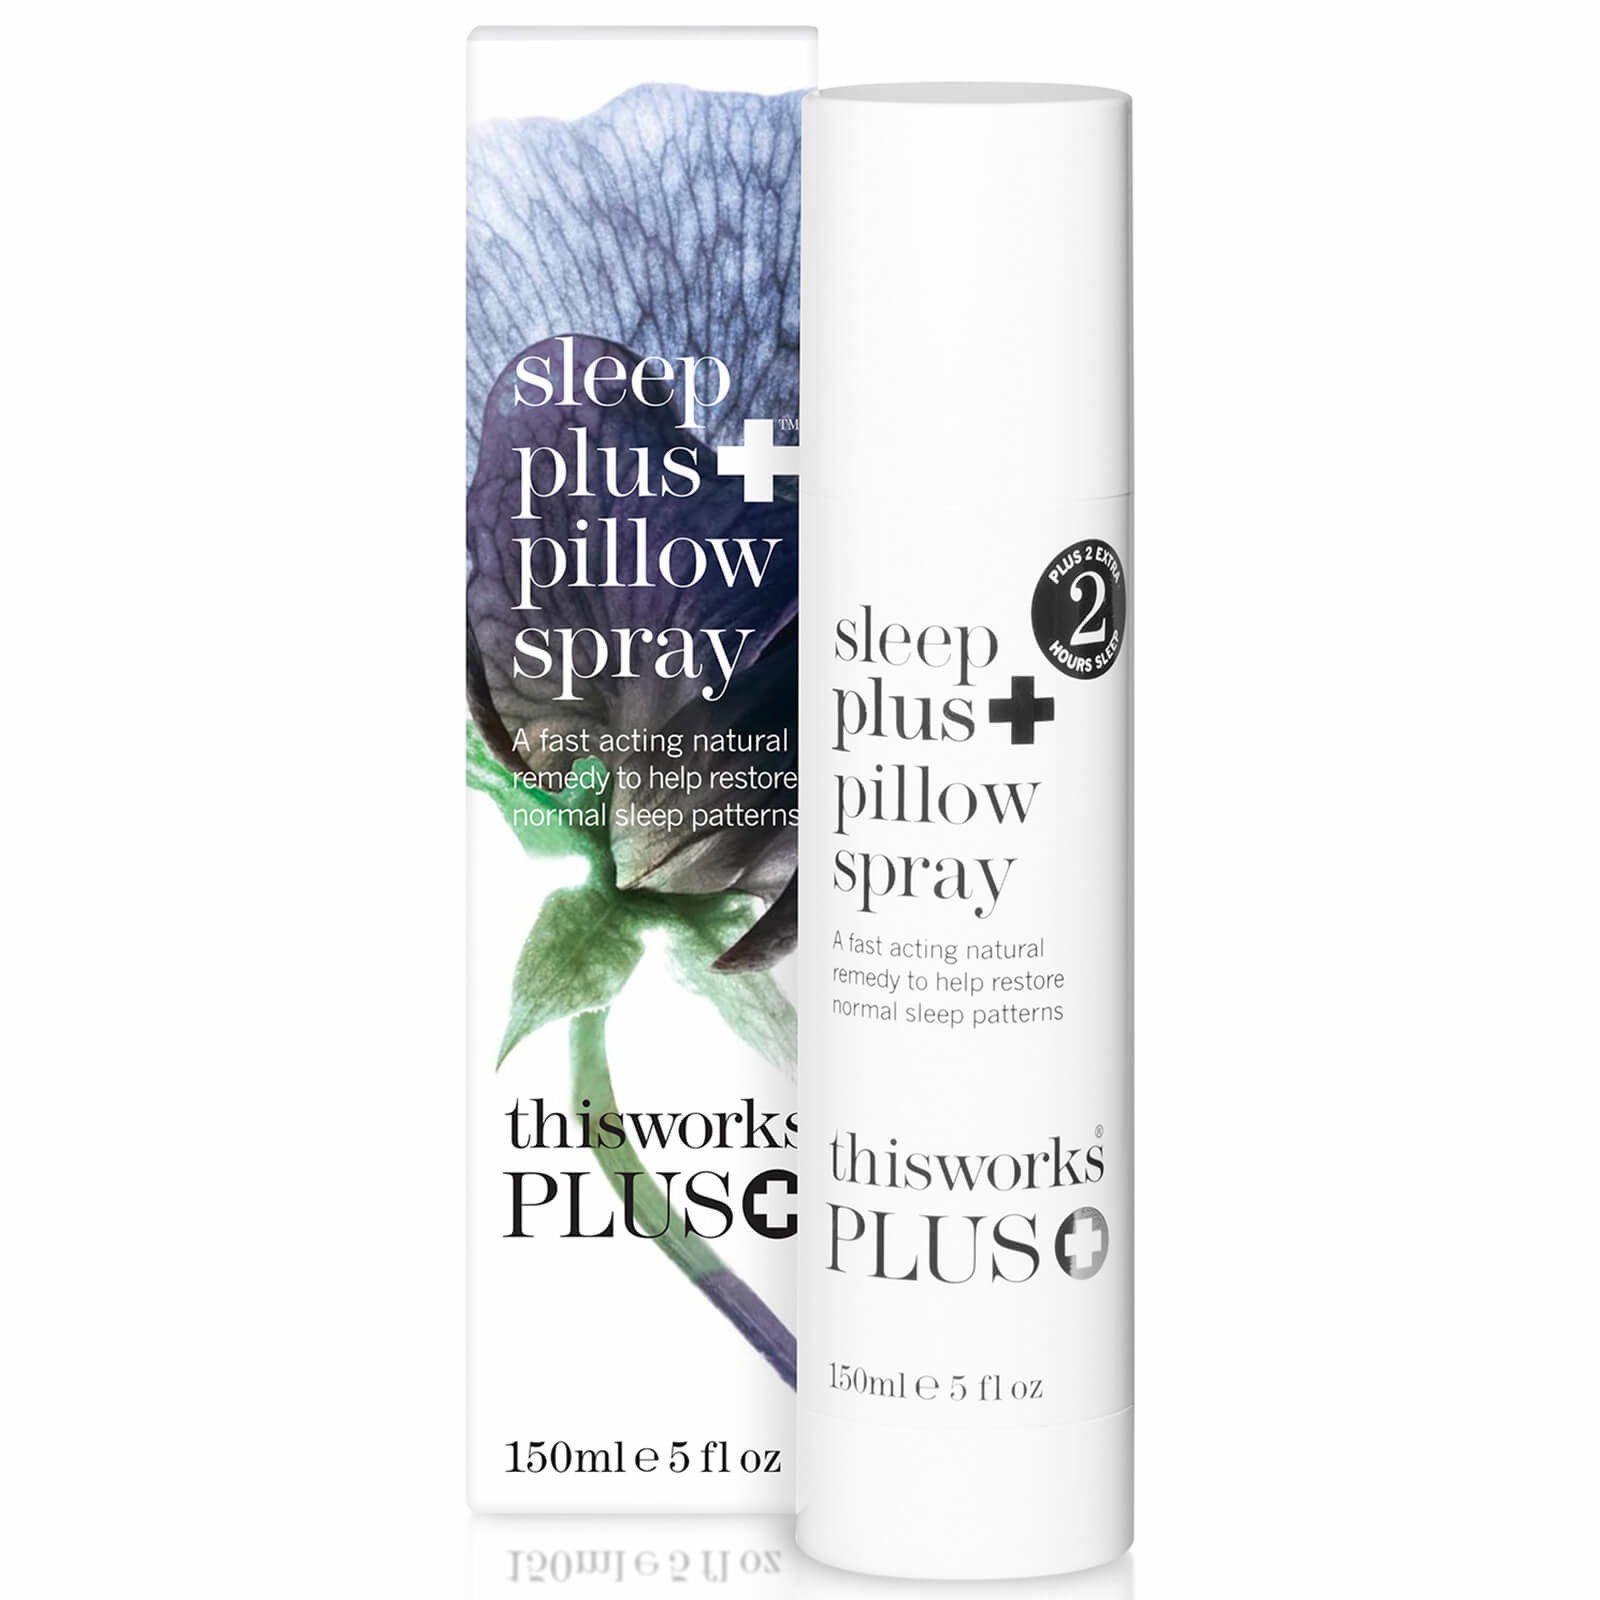 A bottle of pillow spray